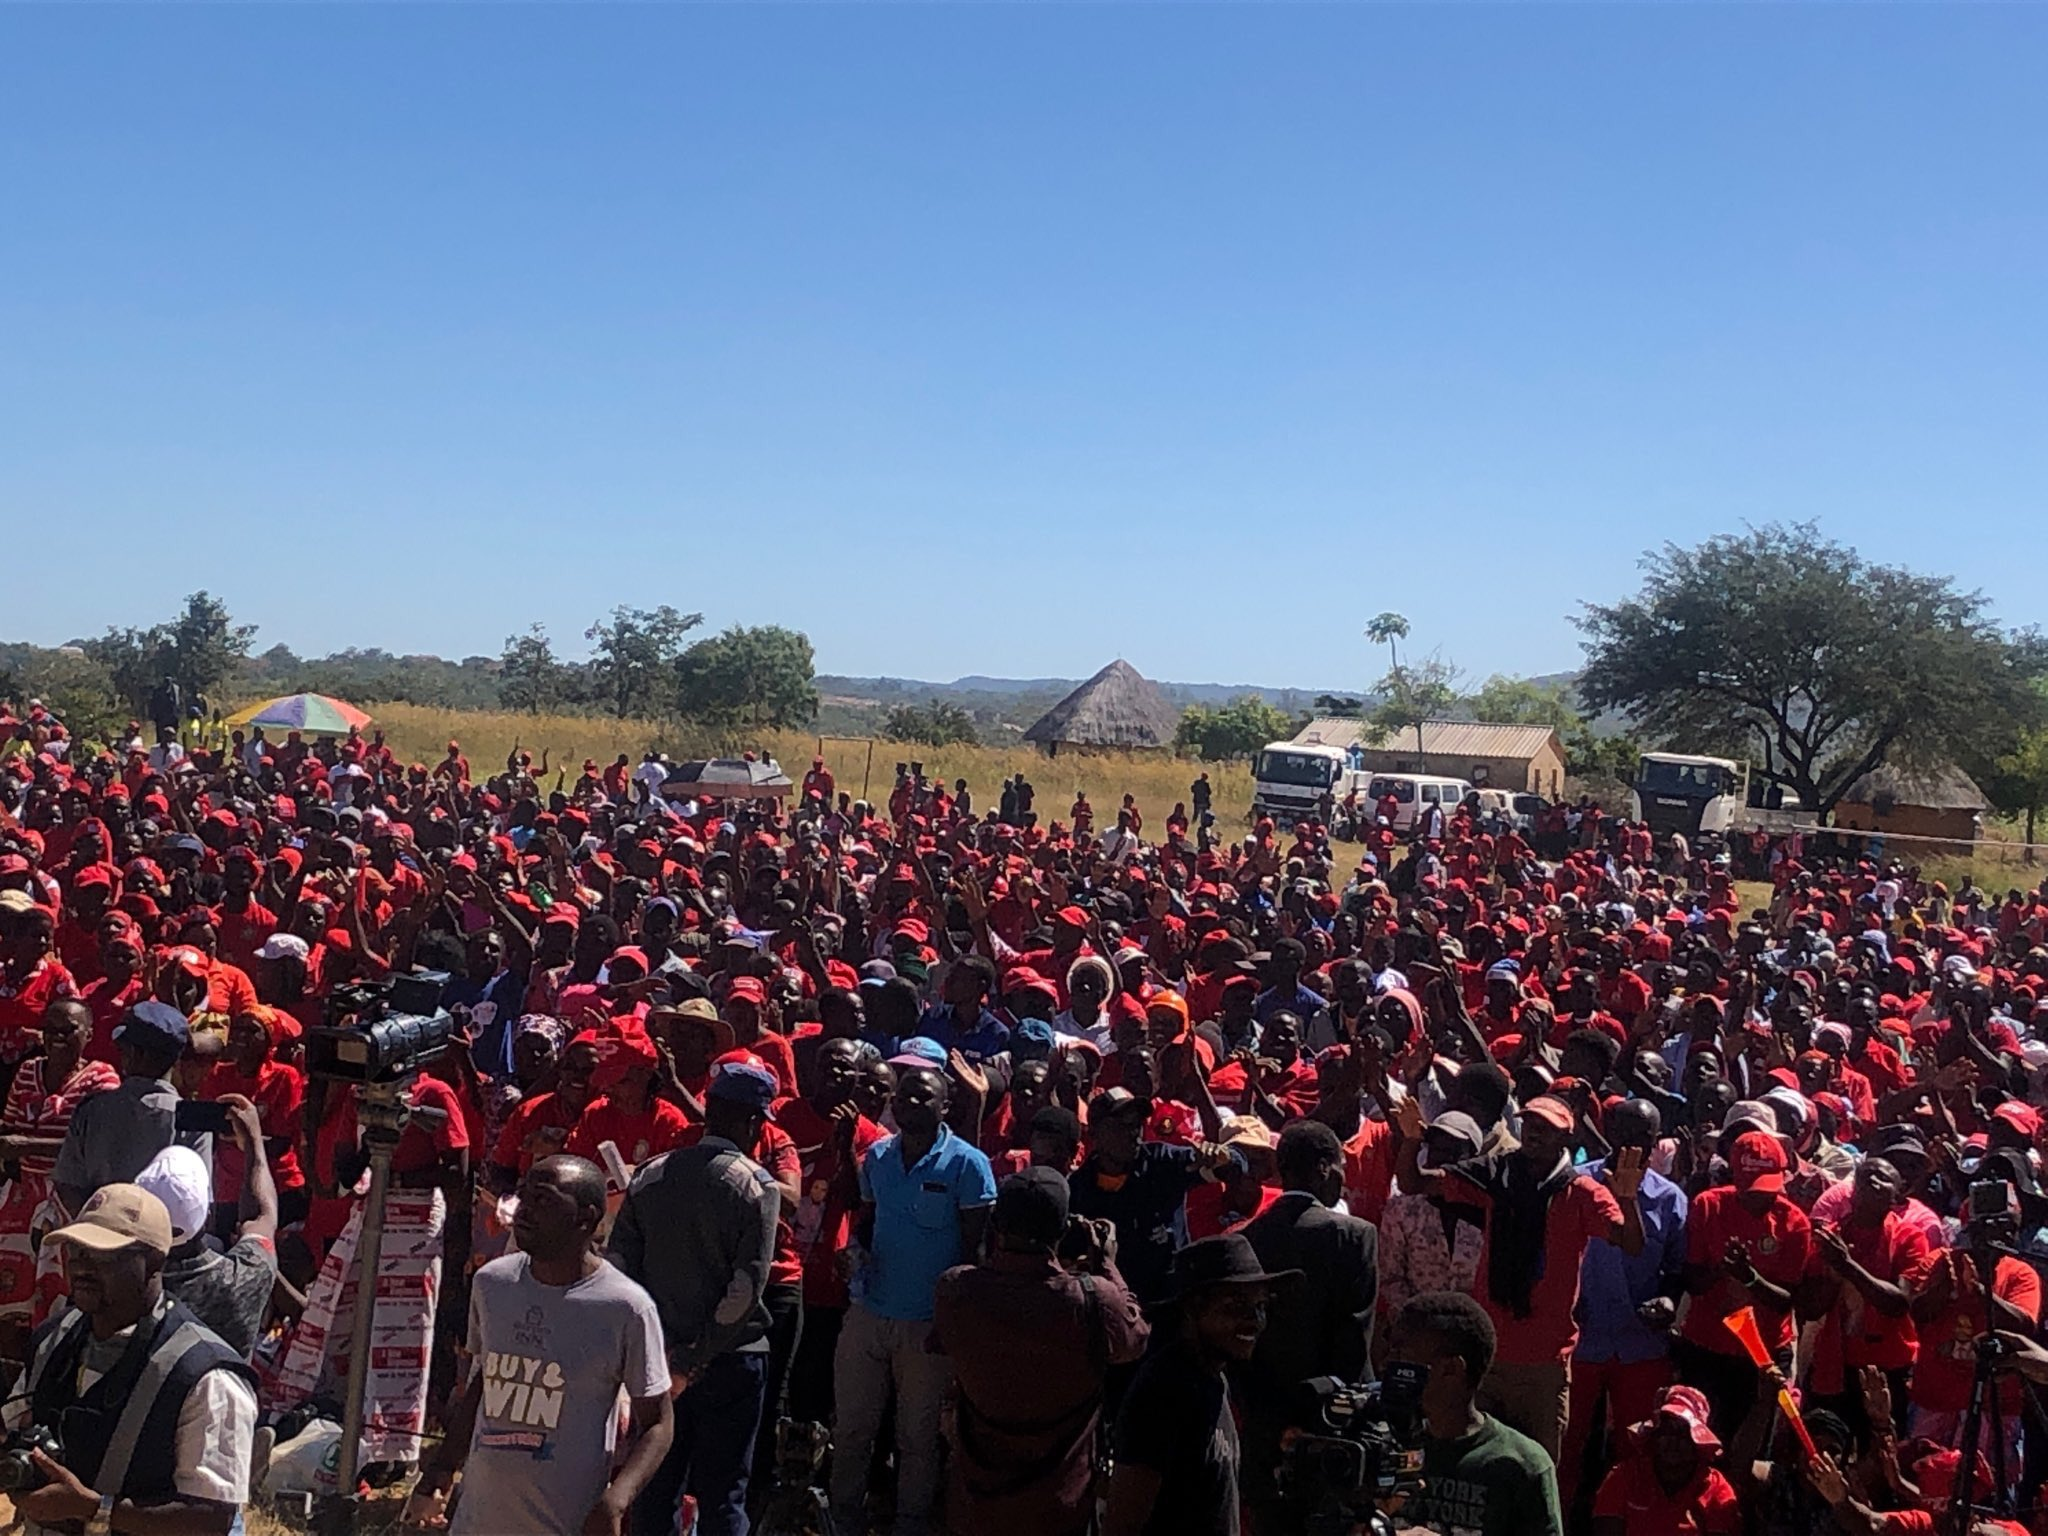 Morgan Tsvangirai Memorial